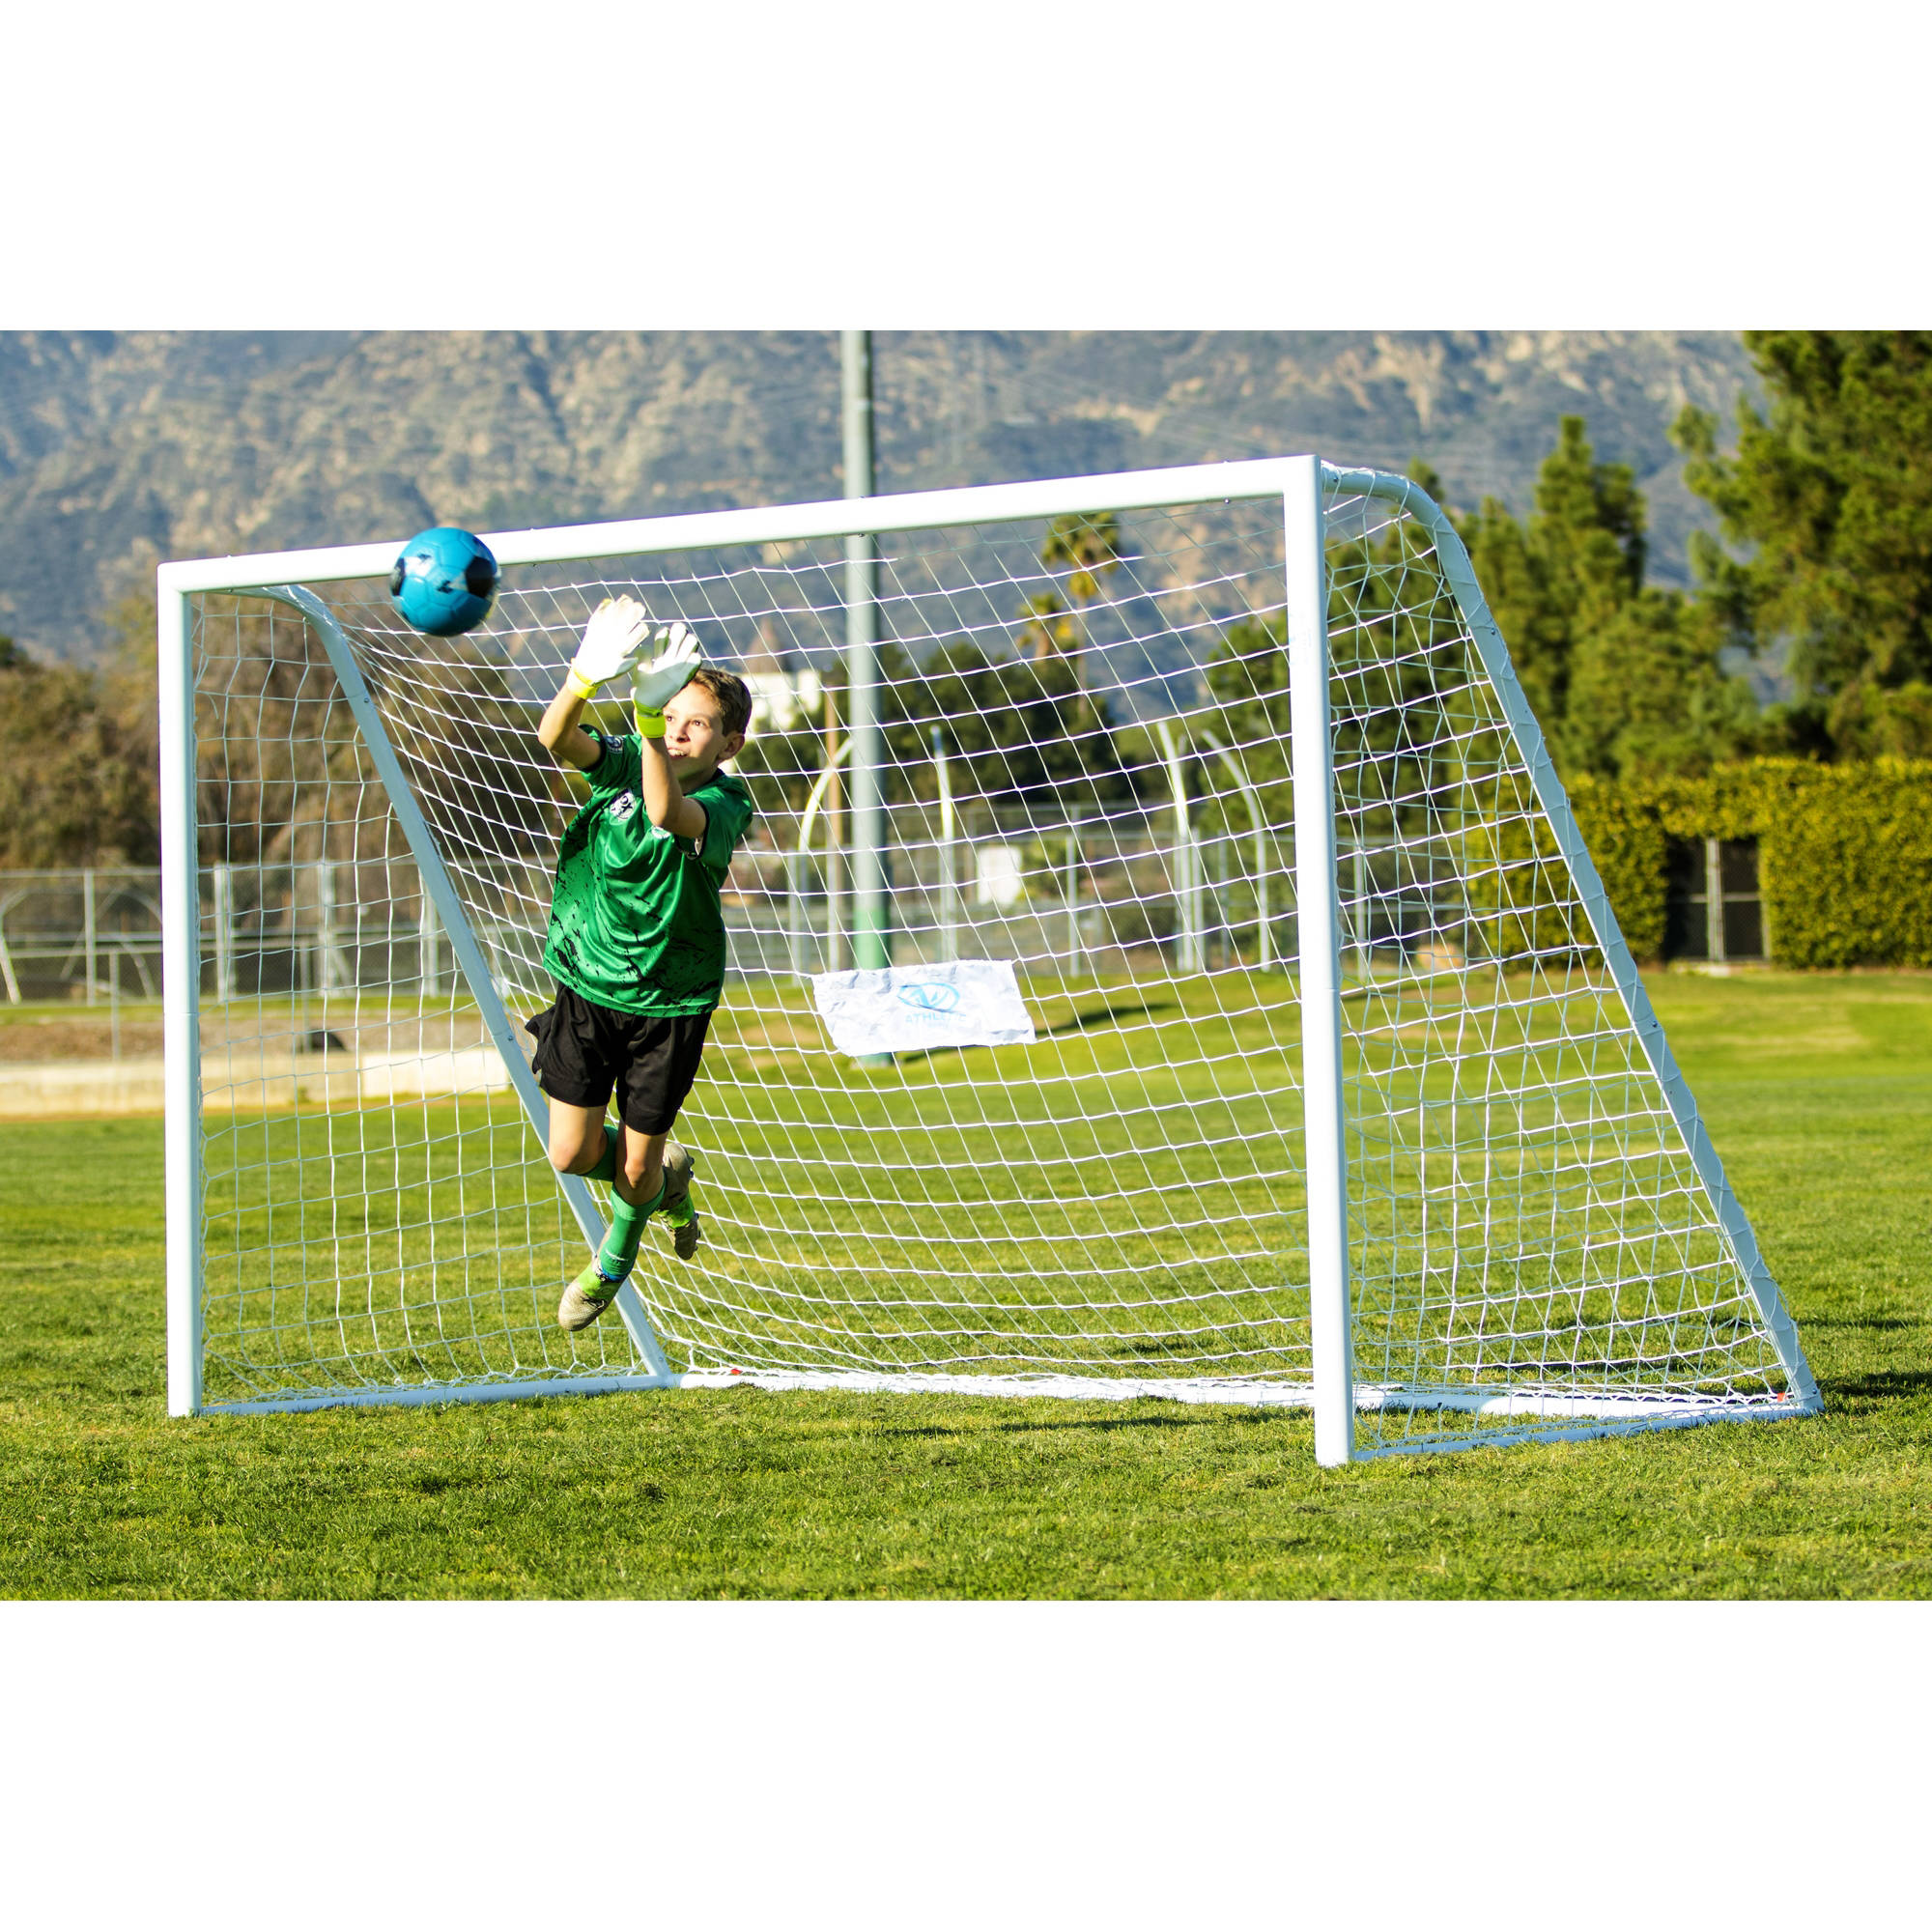 Athletic Works Tournament Soccer Goal by Sportspower Limited